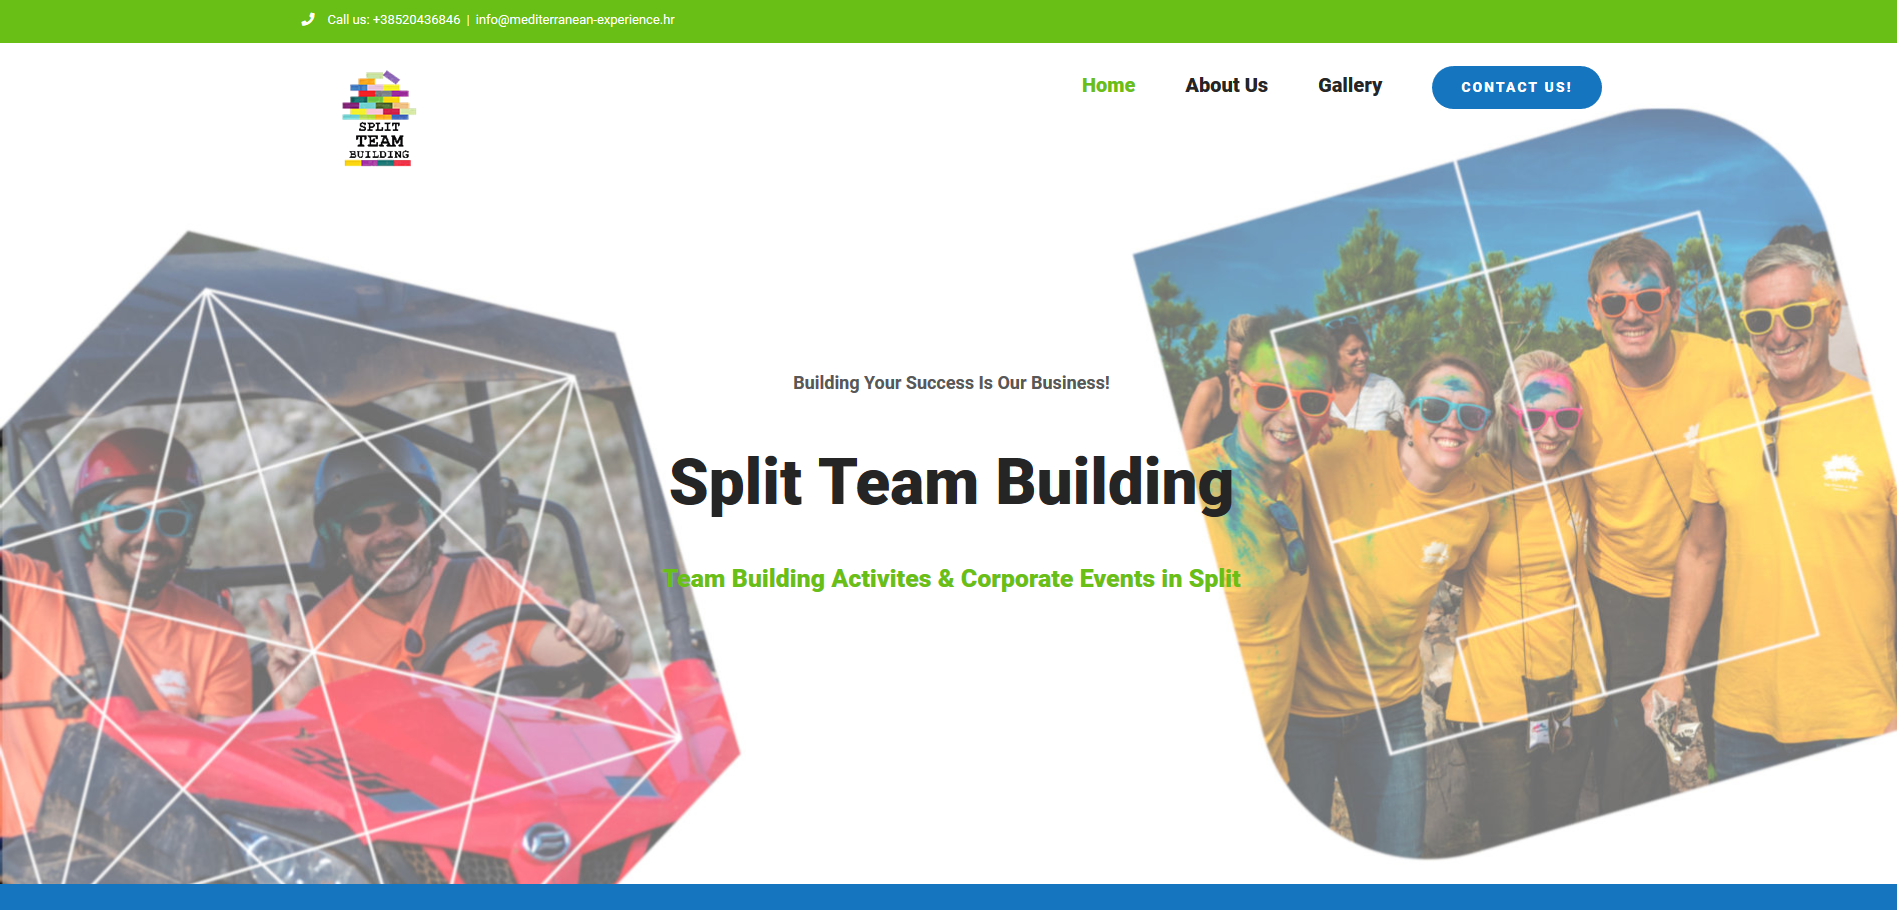 Split Team Building Activites and Events